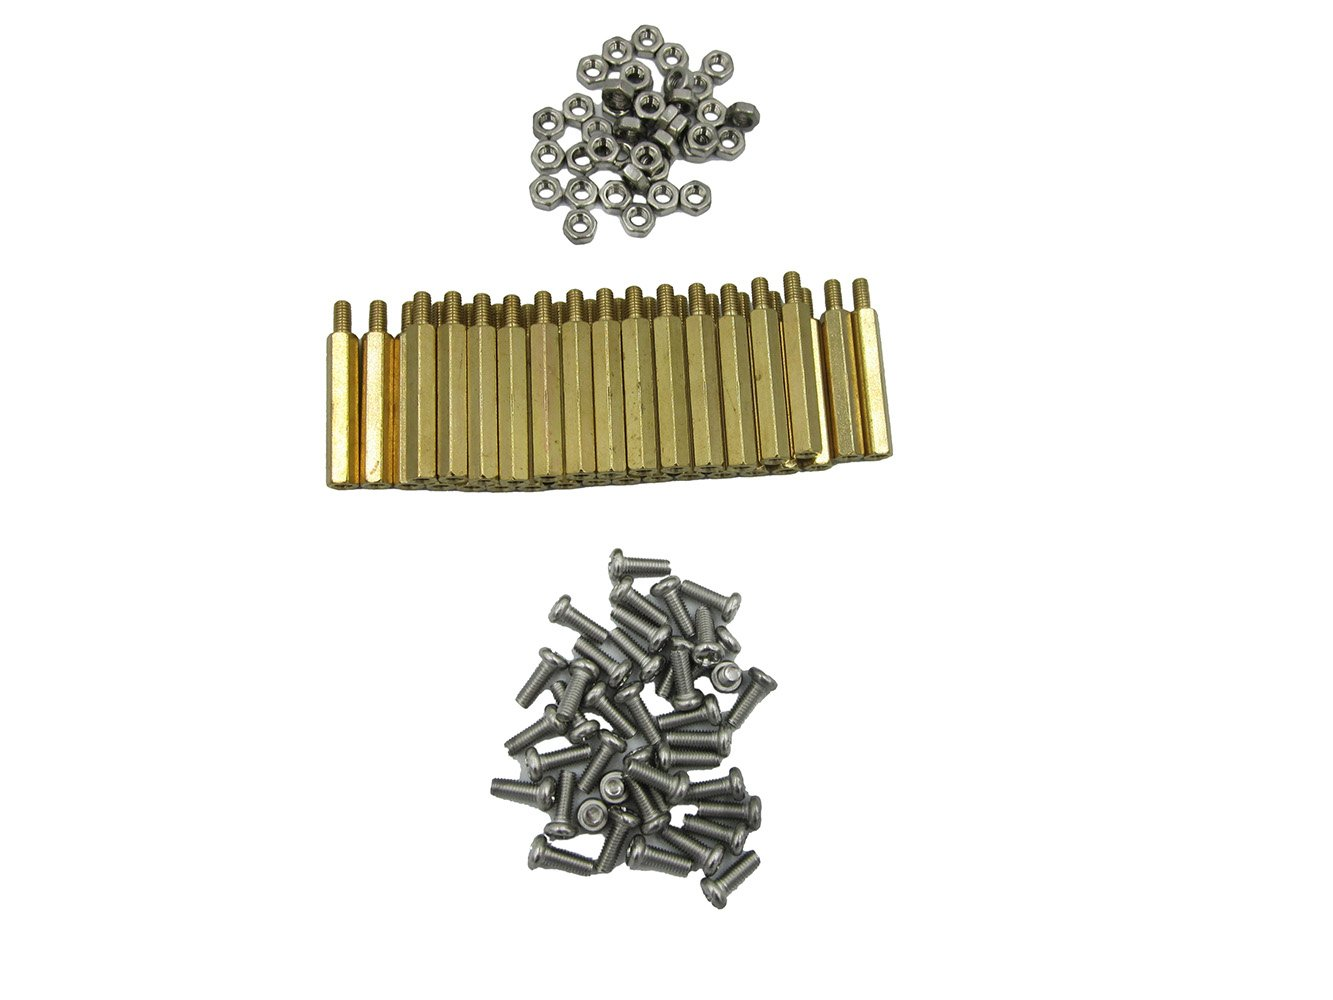 Cheap Tv Circuit Boards Find Deals On Line At Icm289 Icm Controls Furnace Control Module Get Quotations M3 25mm 6mm Brass Spacer Standoff Stainless Steel Screws Nut For Mounting Between